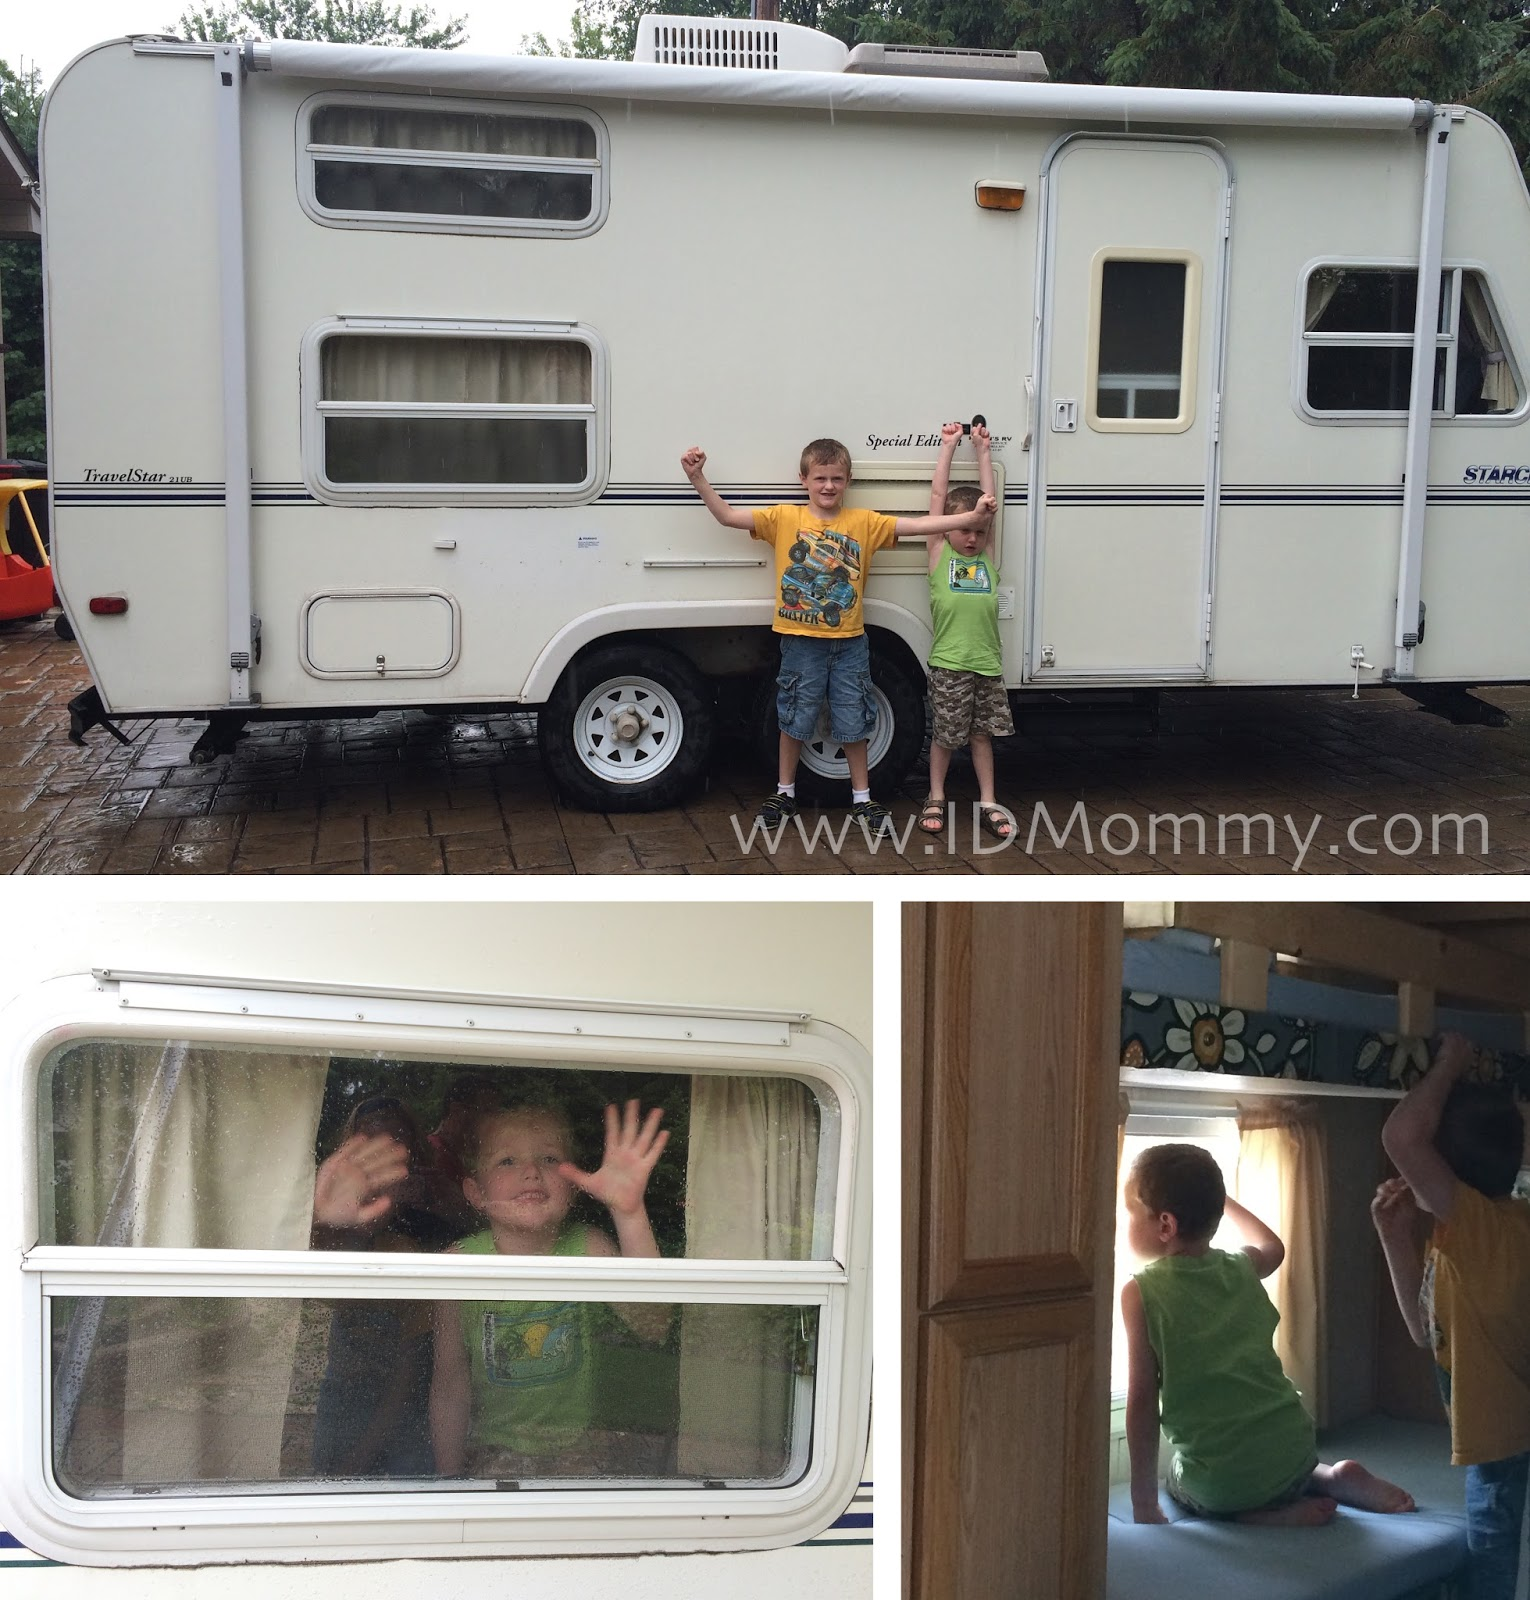 ID Mommy: IDMommy Projects: Our Camper